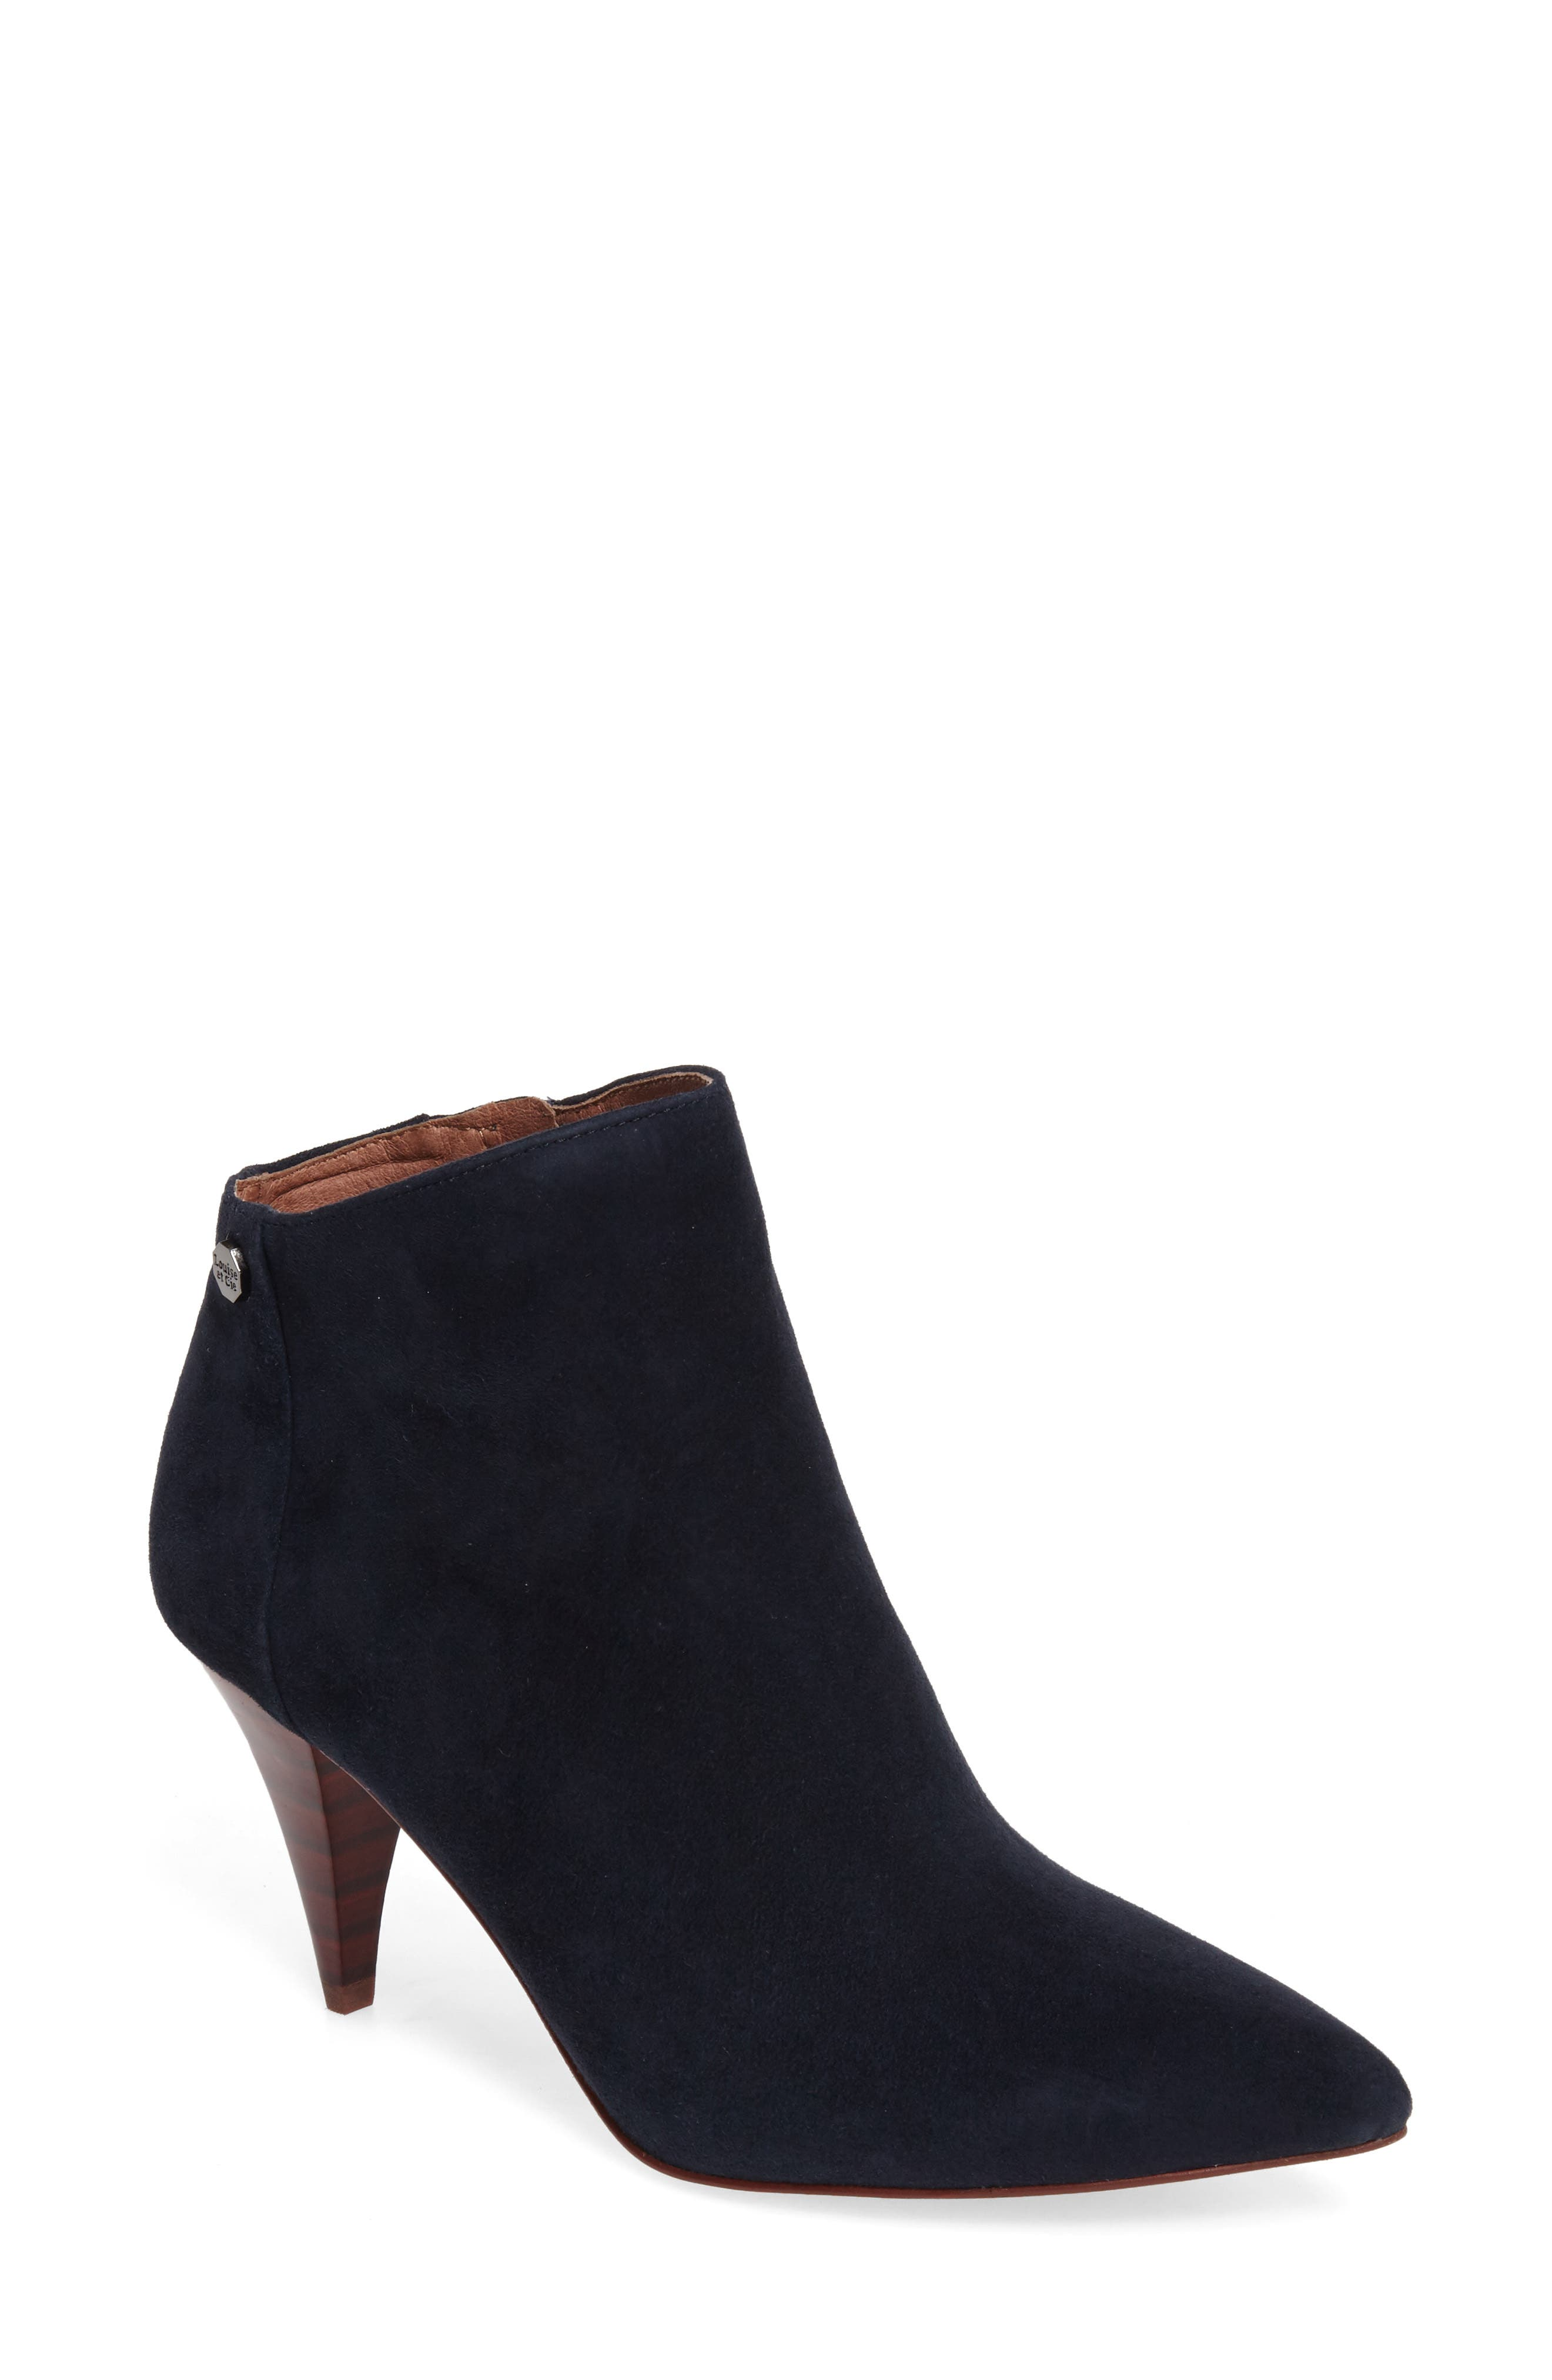 Main Image - Louise et Cie Warley Pointy Toe Bootie (Women)